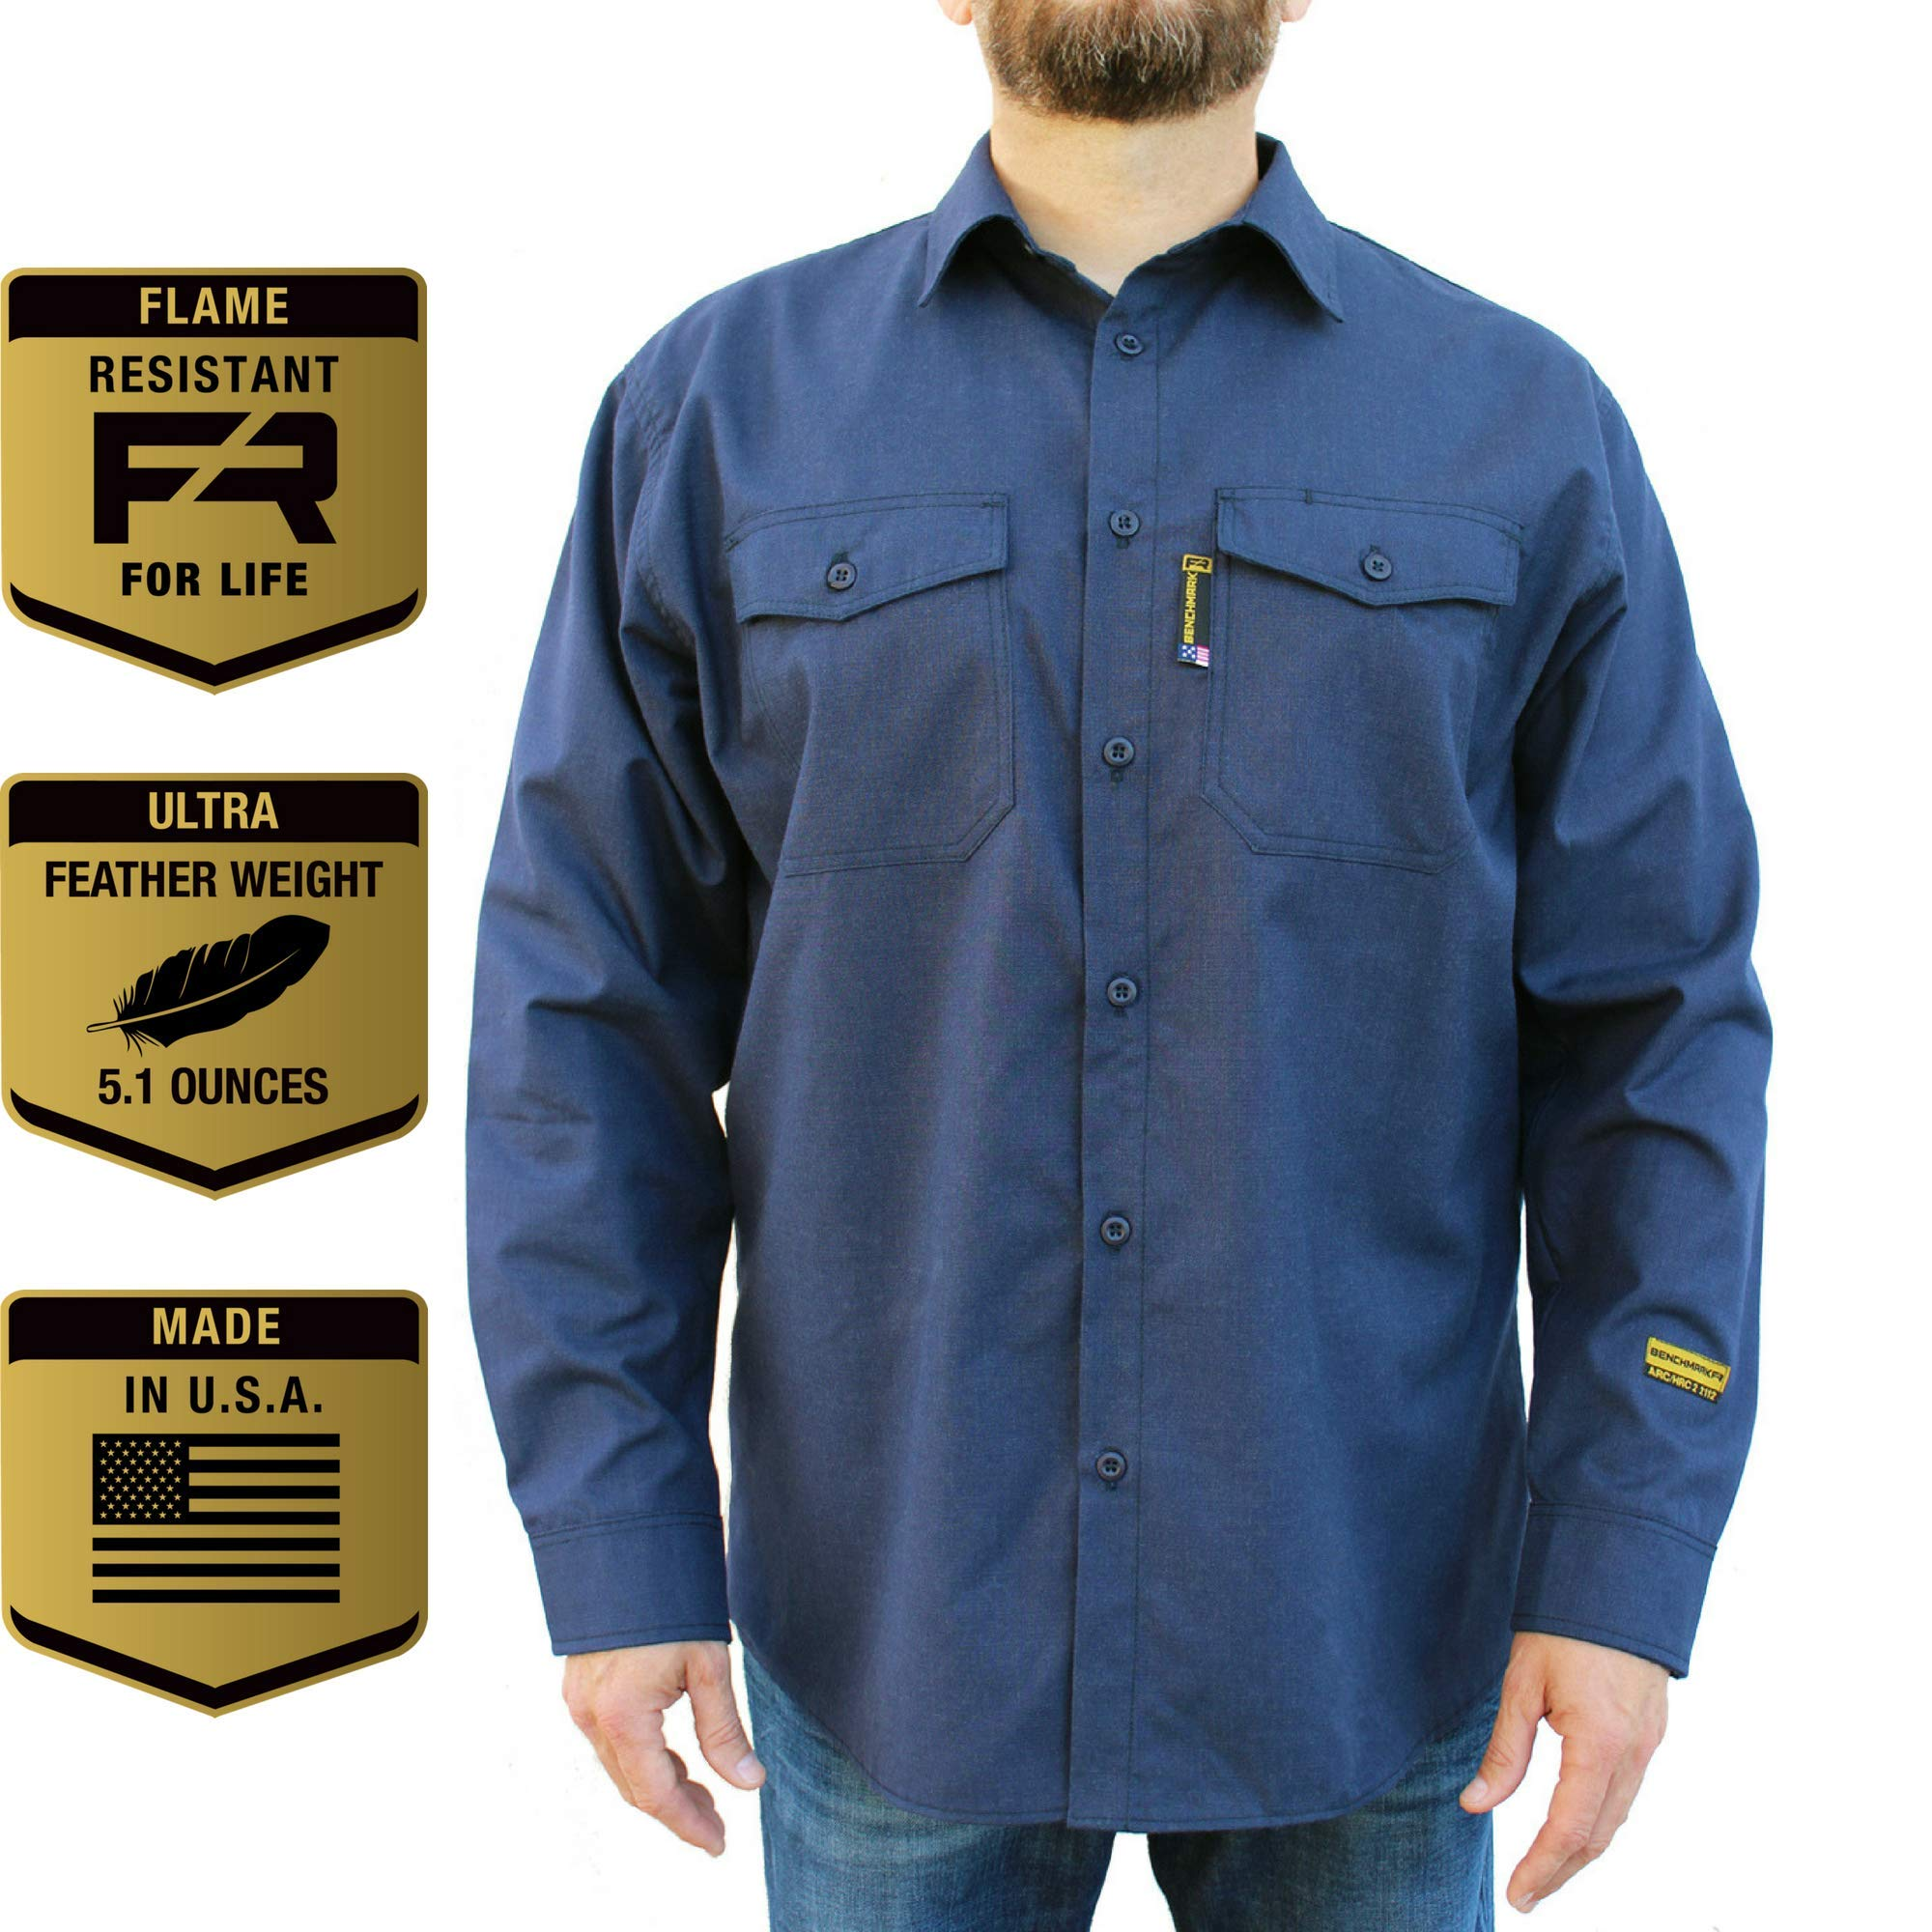 Benchmark FR Silver Bullet, 5.1 oz Ultra Lightweight FR Shirt, NPFA 2112 & CAT 2, Moisture Wicking, Men's FRC with 9 Cal rating, Made in USA, Advanced FR Materials, Navy, Large